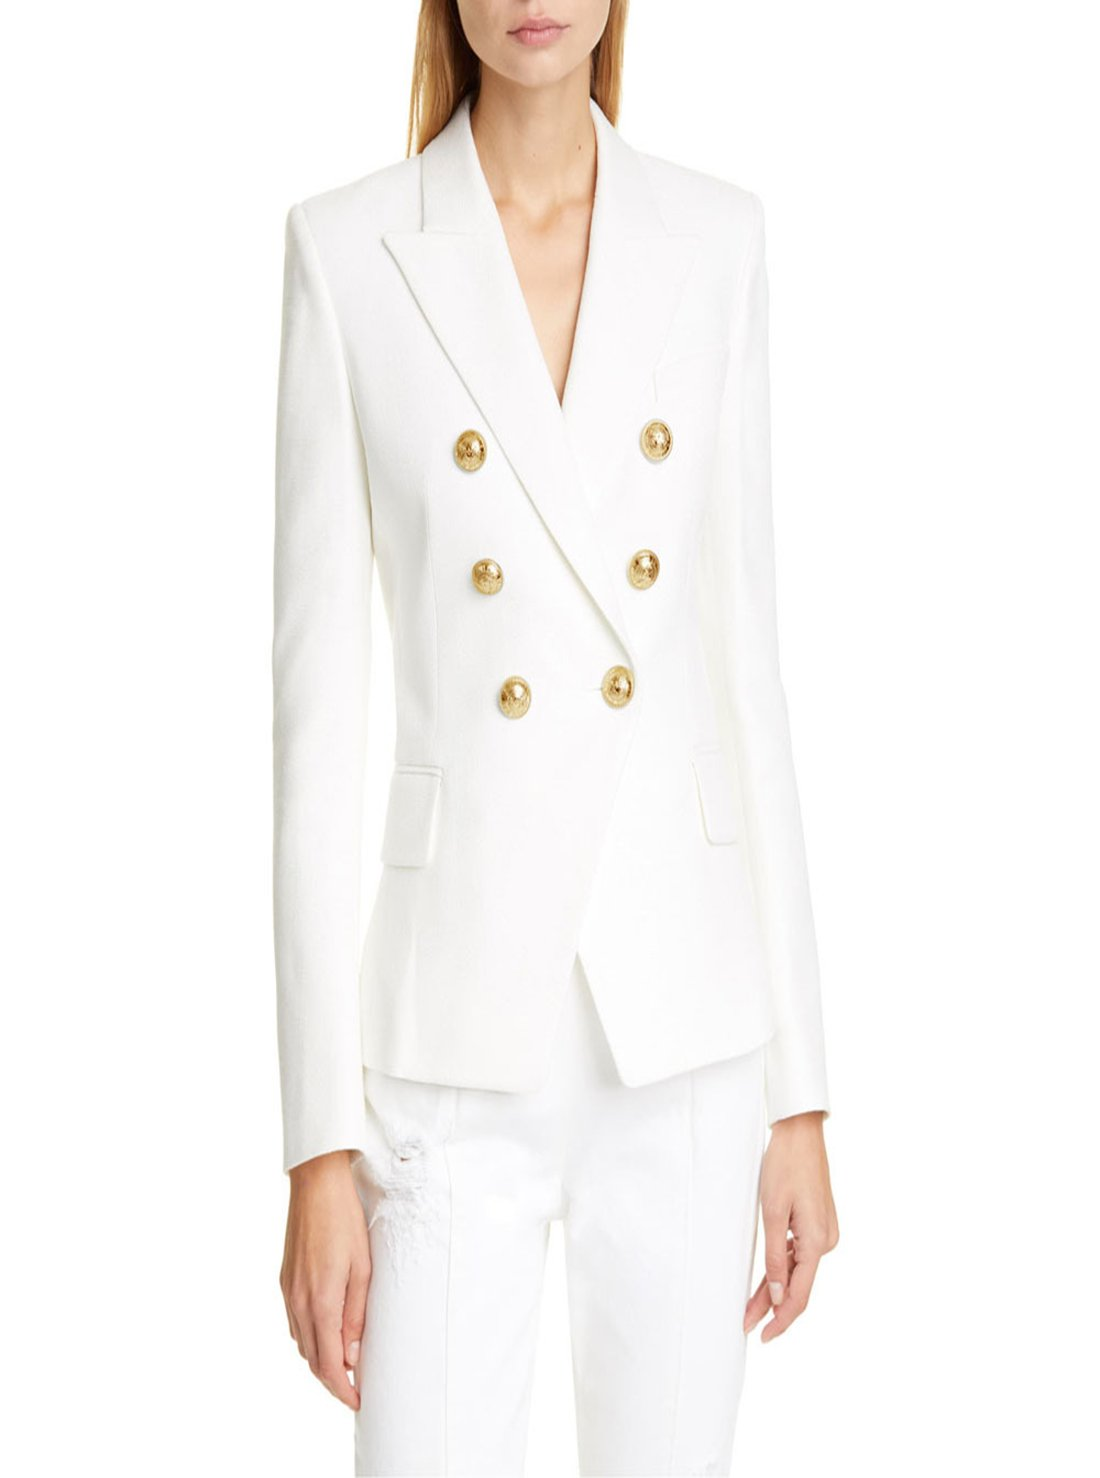 Women's Suits Double Breasted Blazer